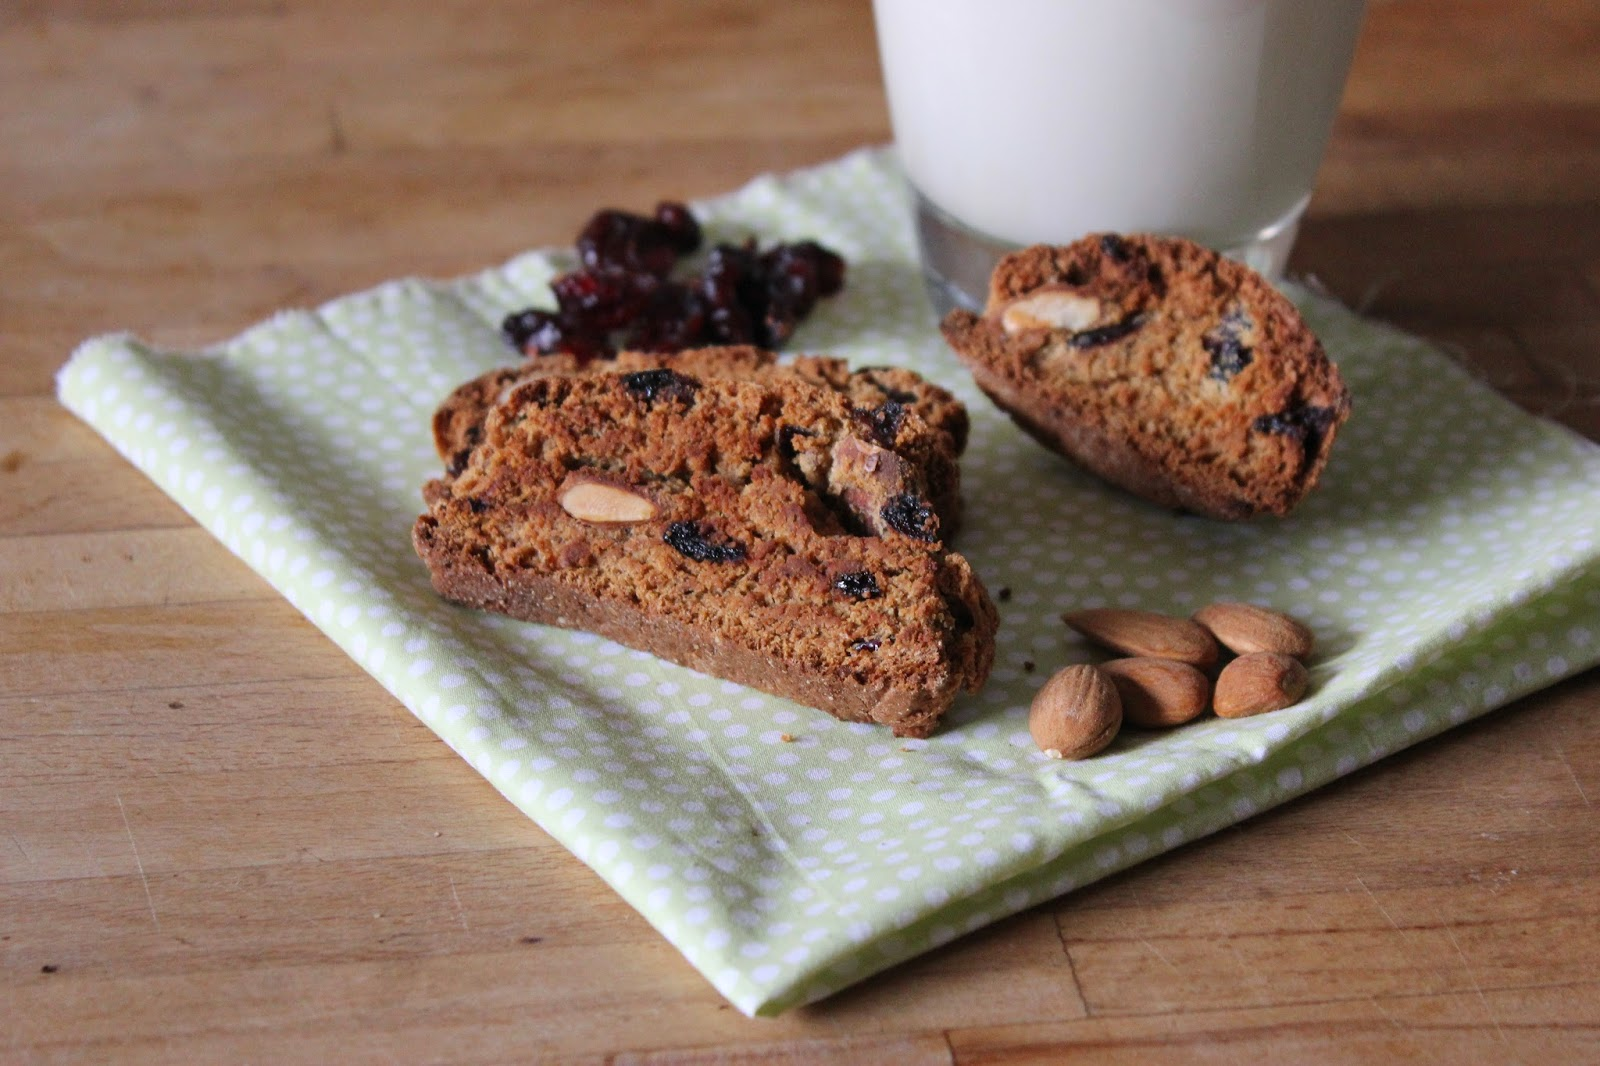 https://cuillereetsaladier.blogspot.com/2015/03/biscotti-amandes-canneberges.html